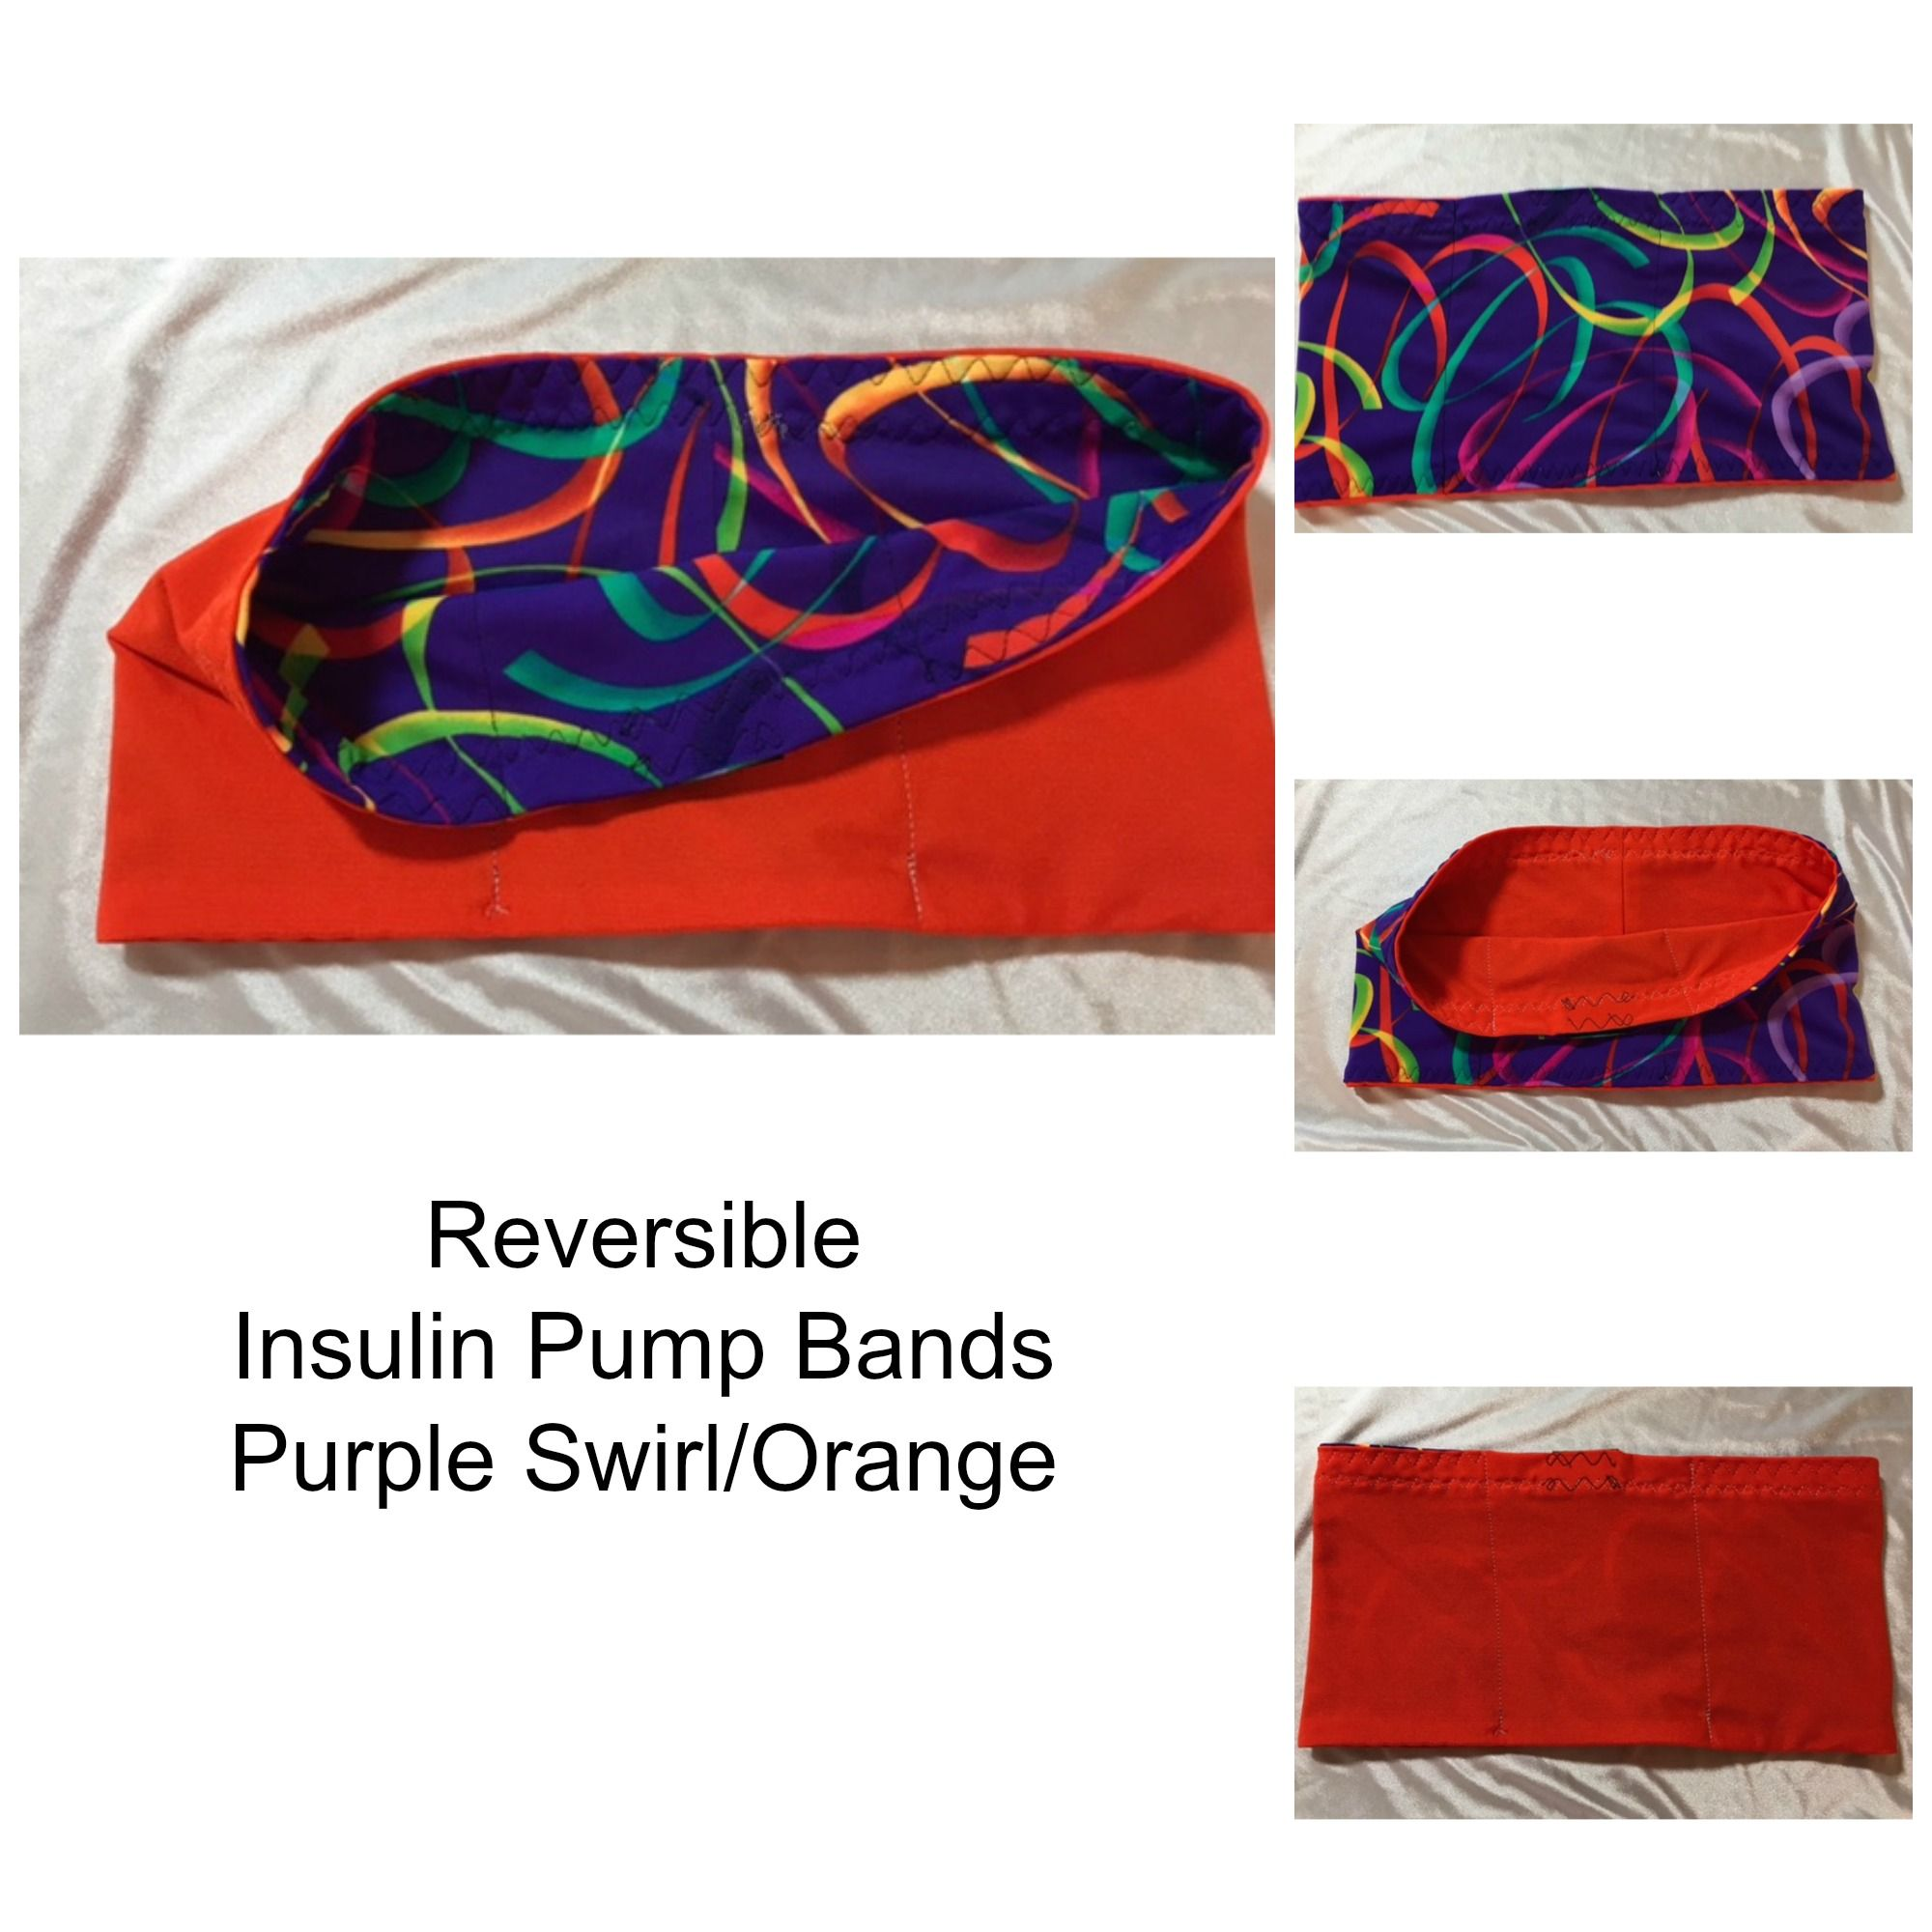 reversible insulin pump bands its like having 2 bands in one